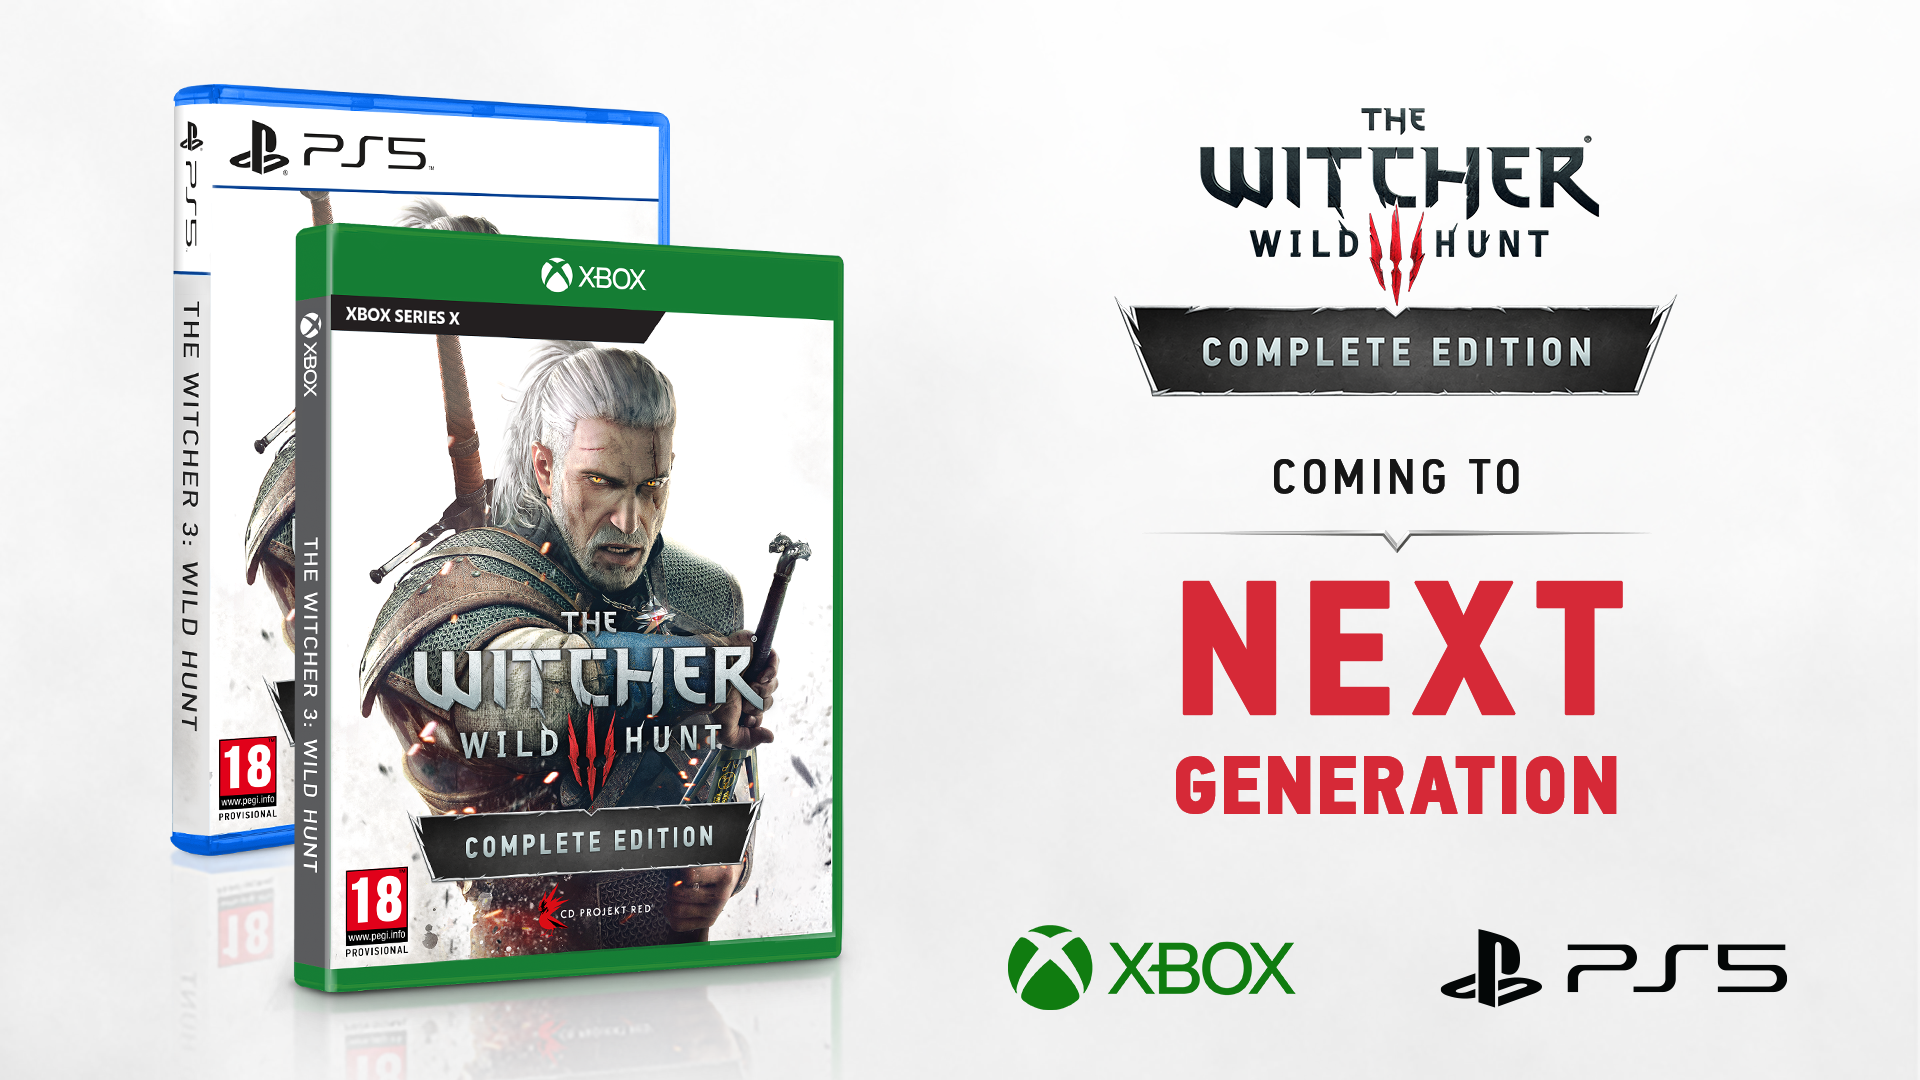 The Witcher 3: Wild Hunt is coming to the next generation! - Image 1